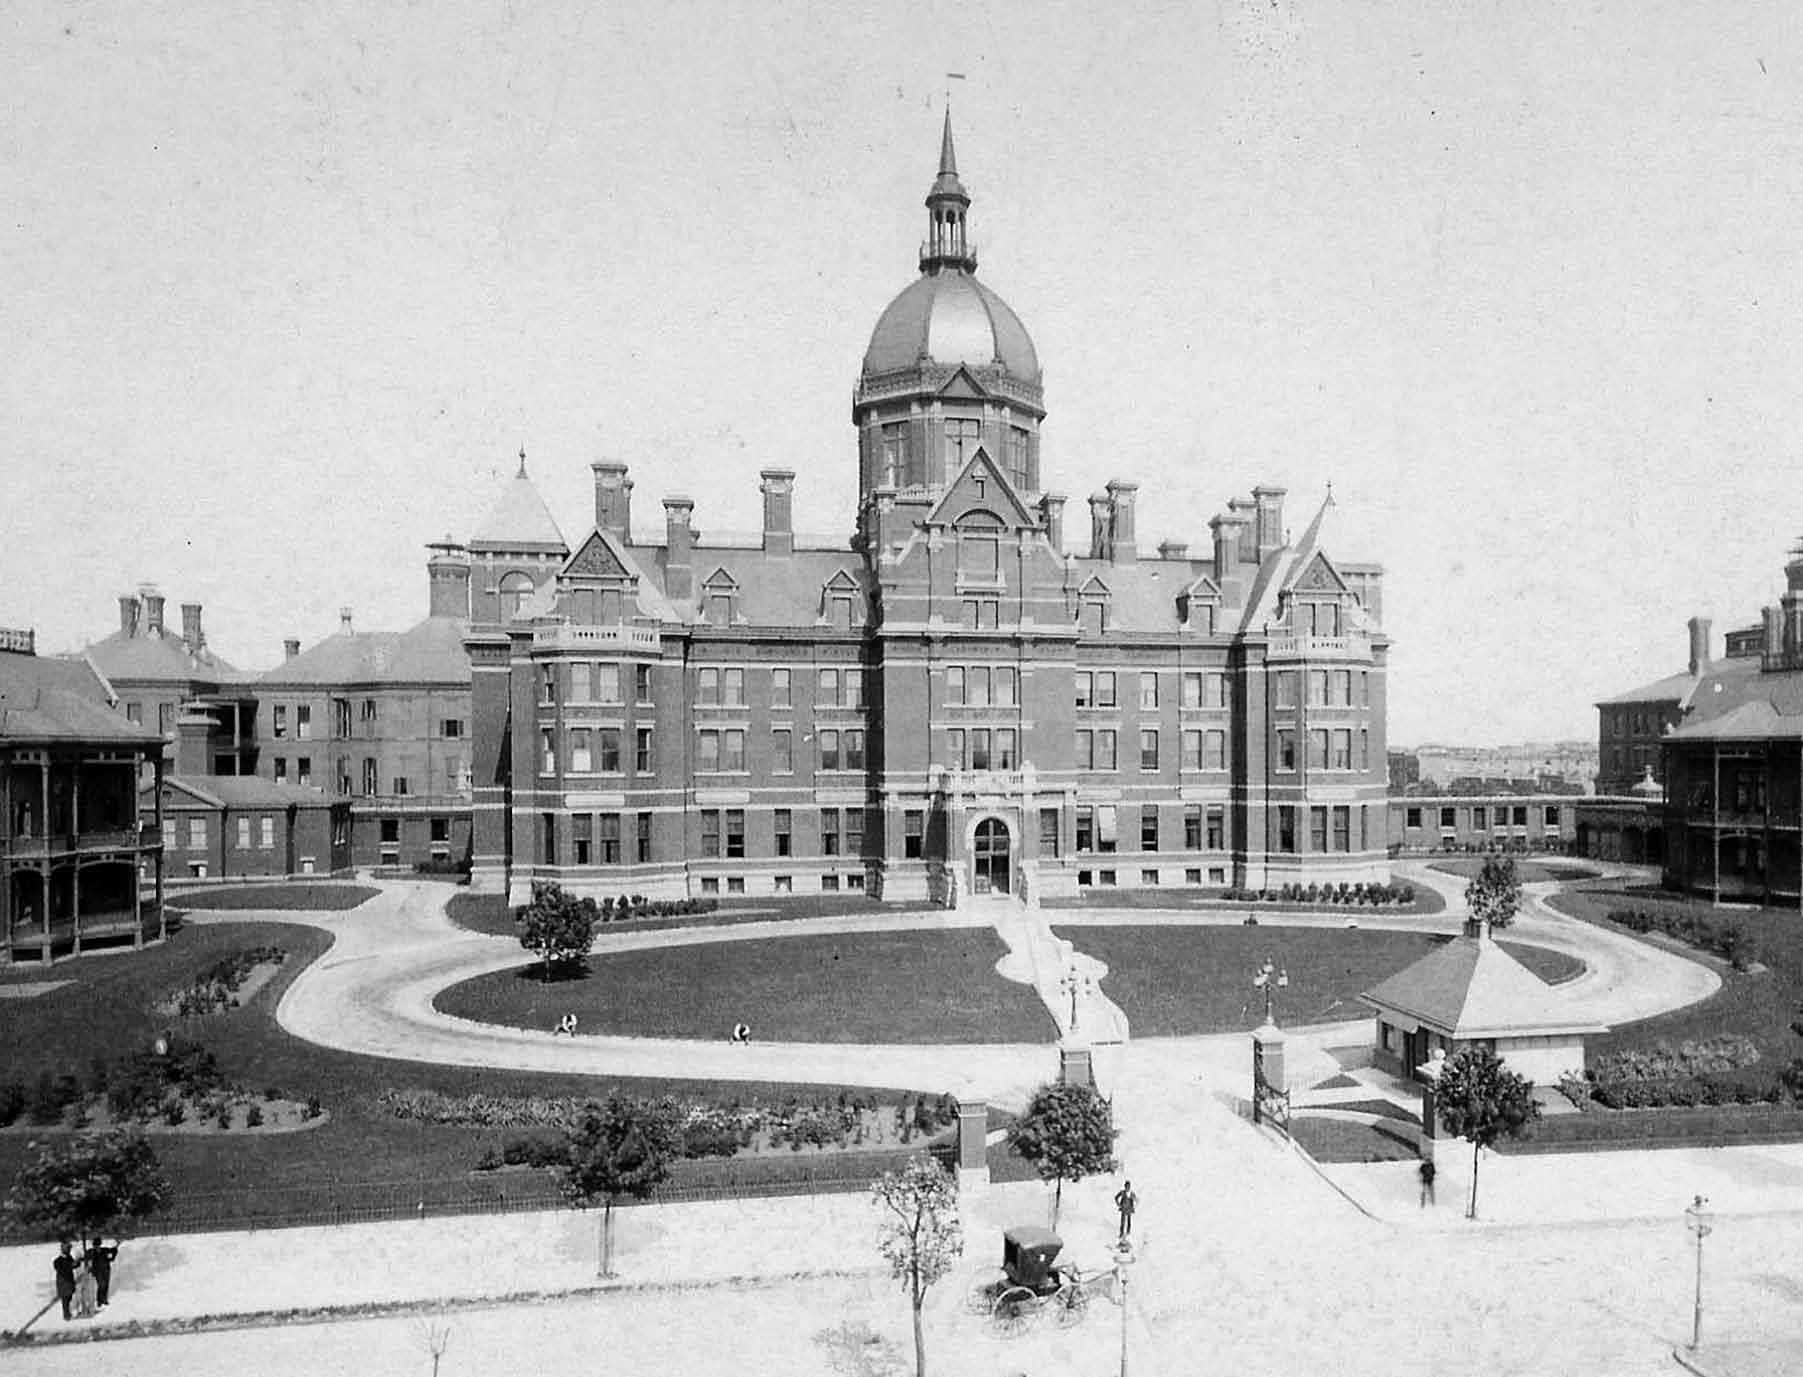 The Johns Hopkins Hospital, shown here at the time of its completion in 1889, was considered a municipal and national marvel when it opened.